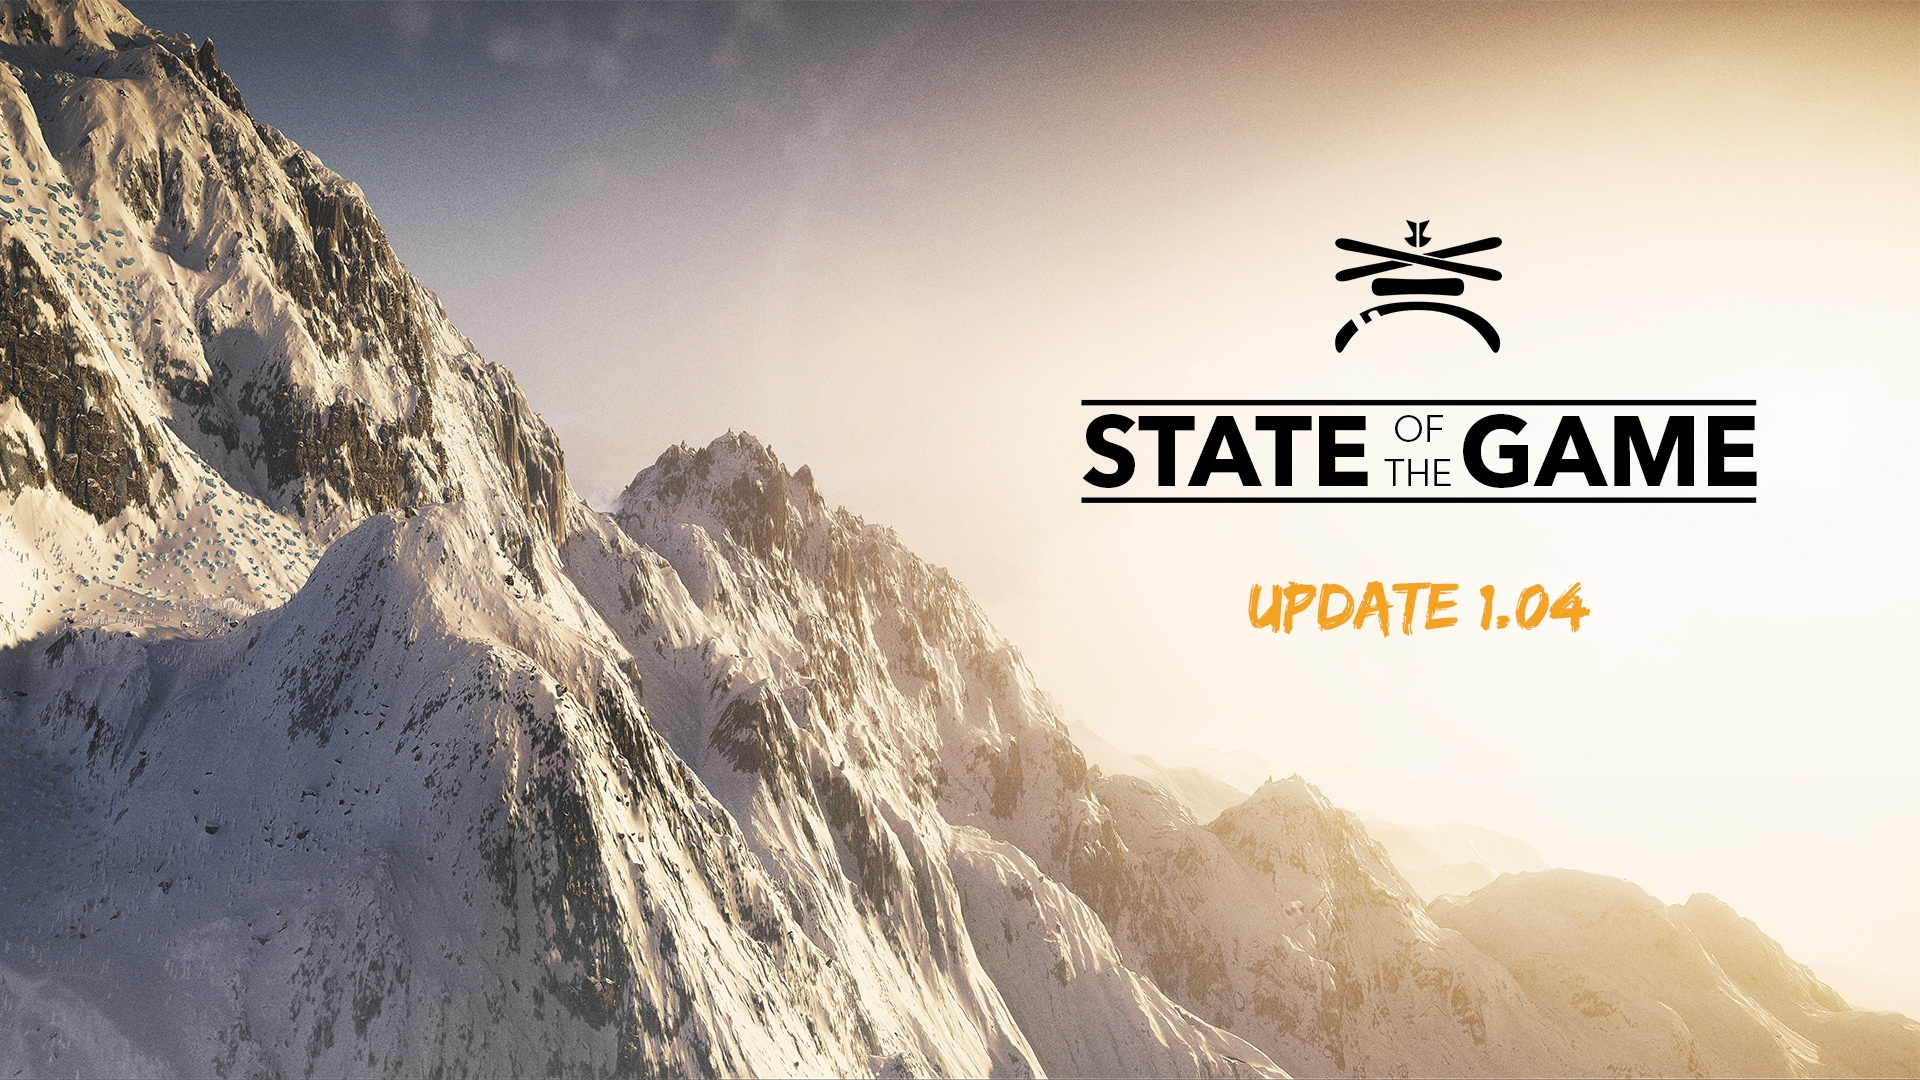 STATE OF THE GAME: Update 1 04 | Steep Game News & Updates